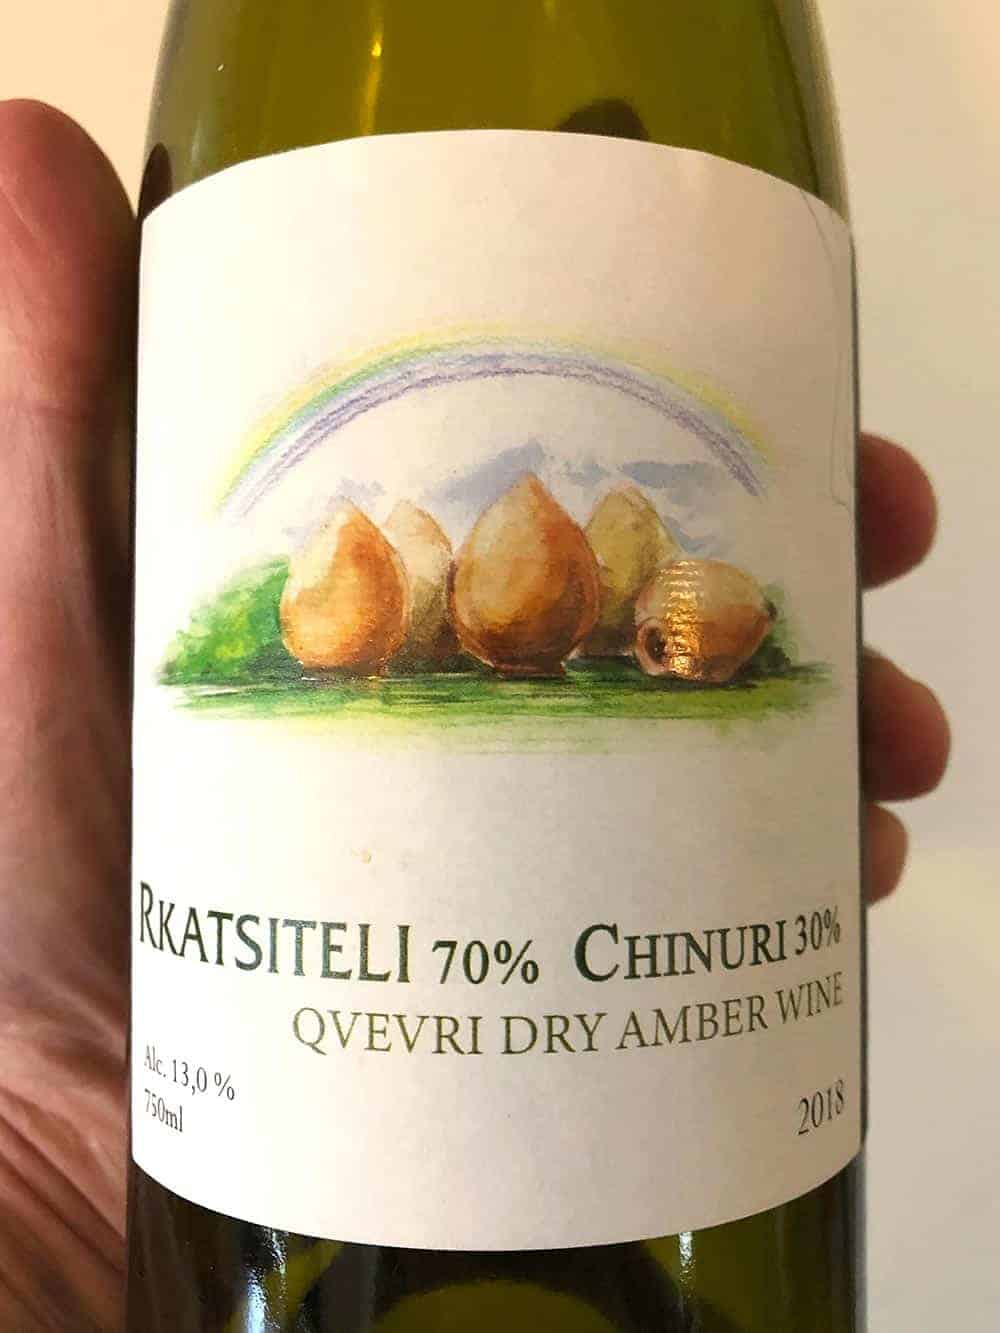 label closeup of Chubini amber wine